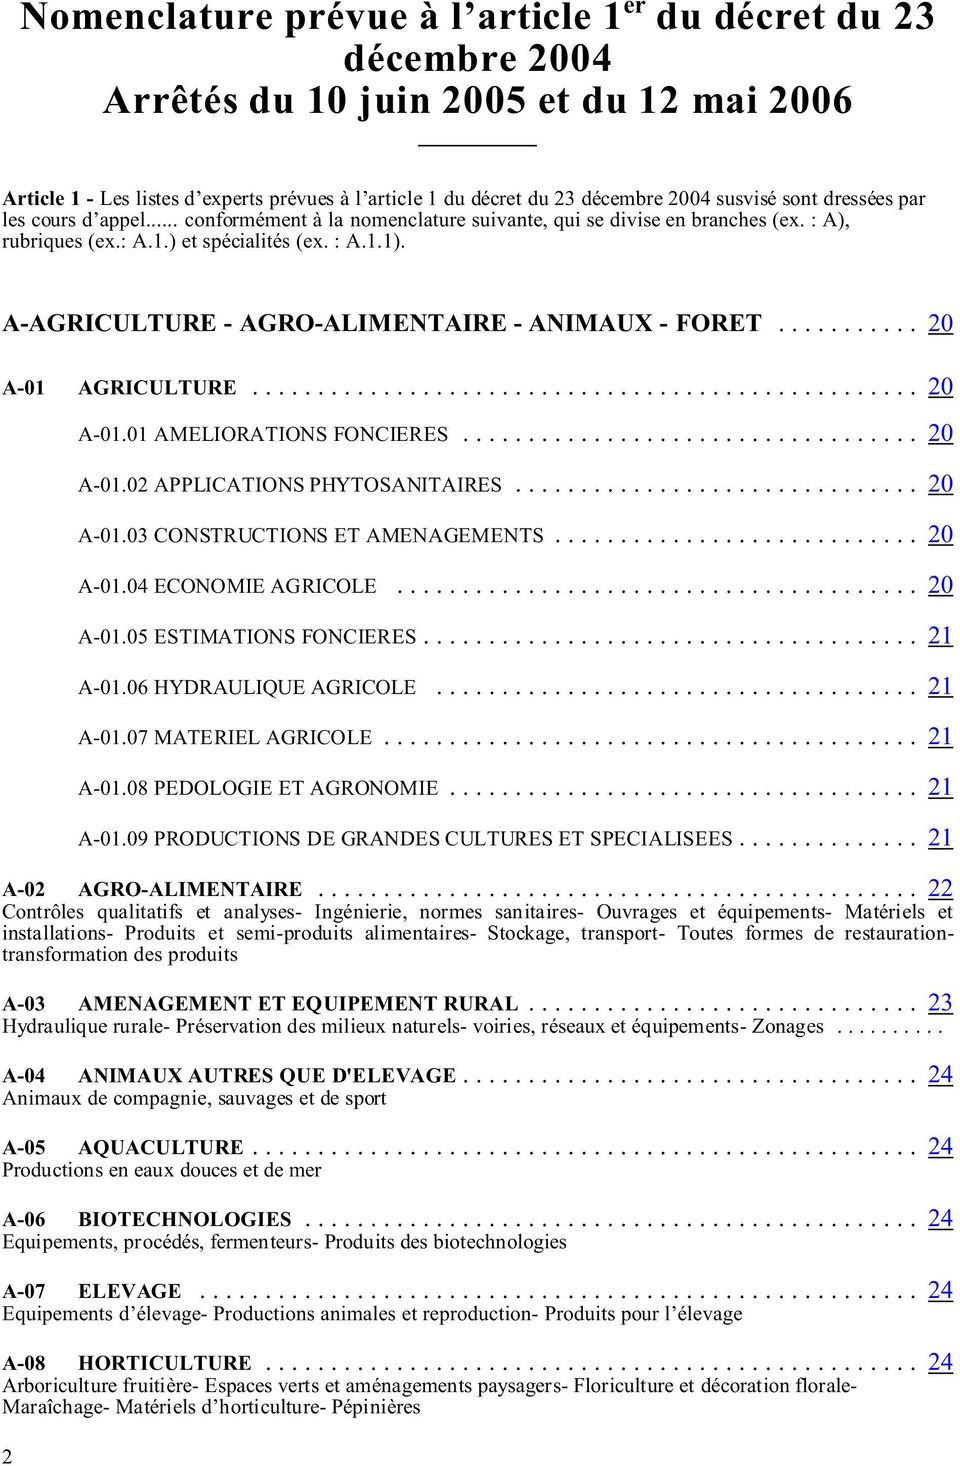 A-AGRICULTURE - AGRO-ALIMENTAIRE - ANIMAUX - FORET... 20 A-01 AGRICULTURE... 20 2 A-01.01 AMELIORATIONS FONCIERES... 20 A-01.02 APPLICATIONS PHYTOSANITAIRES... 20 A-01.03 CONSTRUCTIONS ET AMENAGEMENTS.